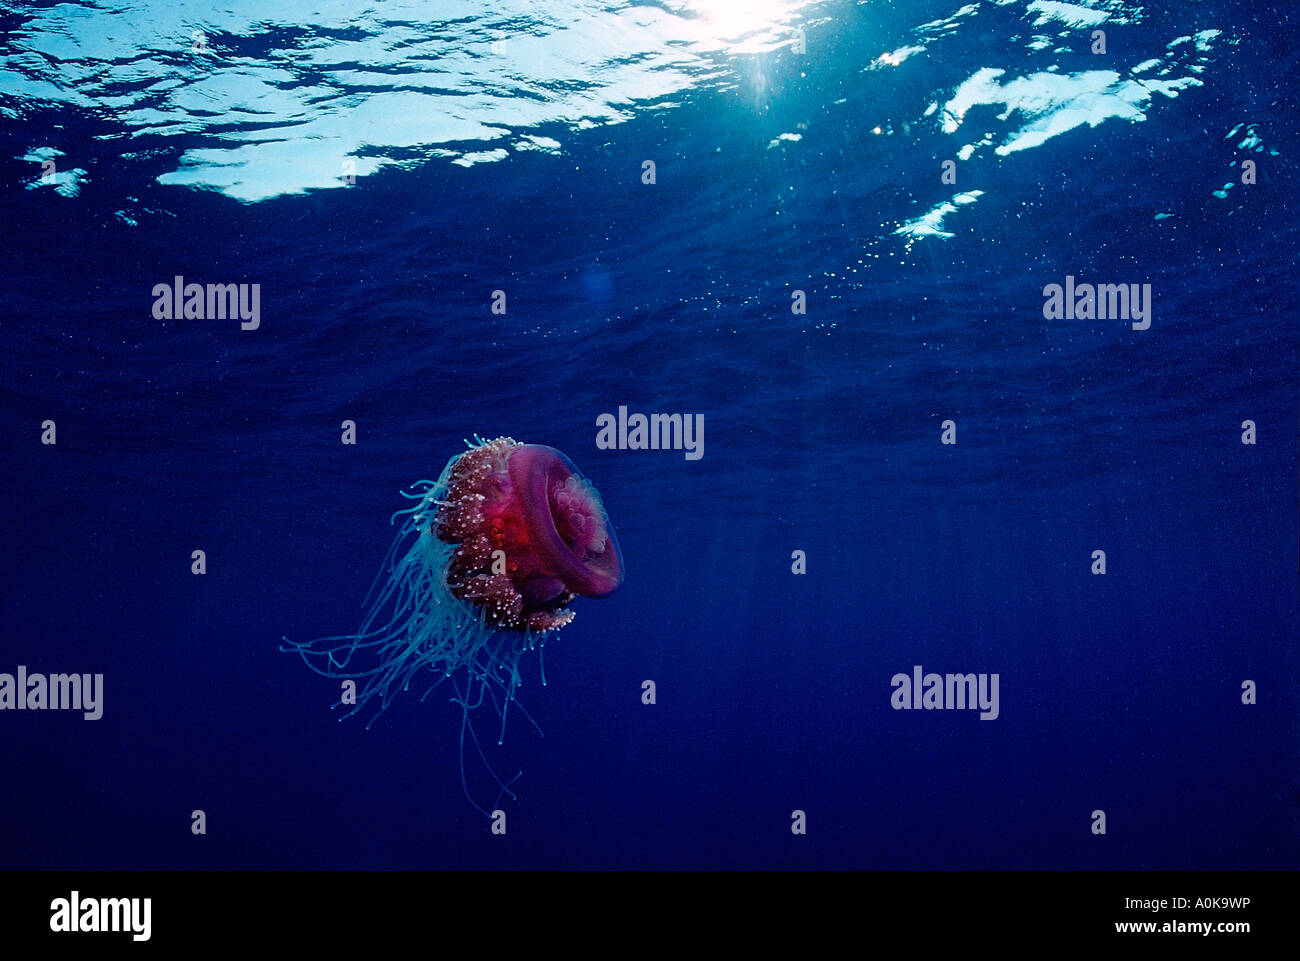 Crown jellyfish in Open Sea Netrostoma setouchina Red Sea Egypt - Stock Image